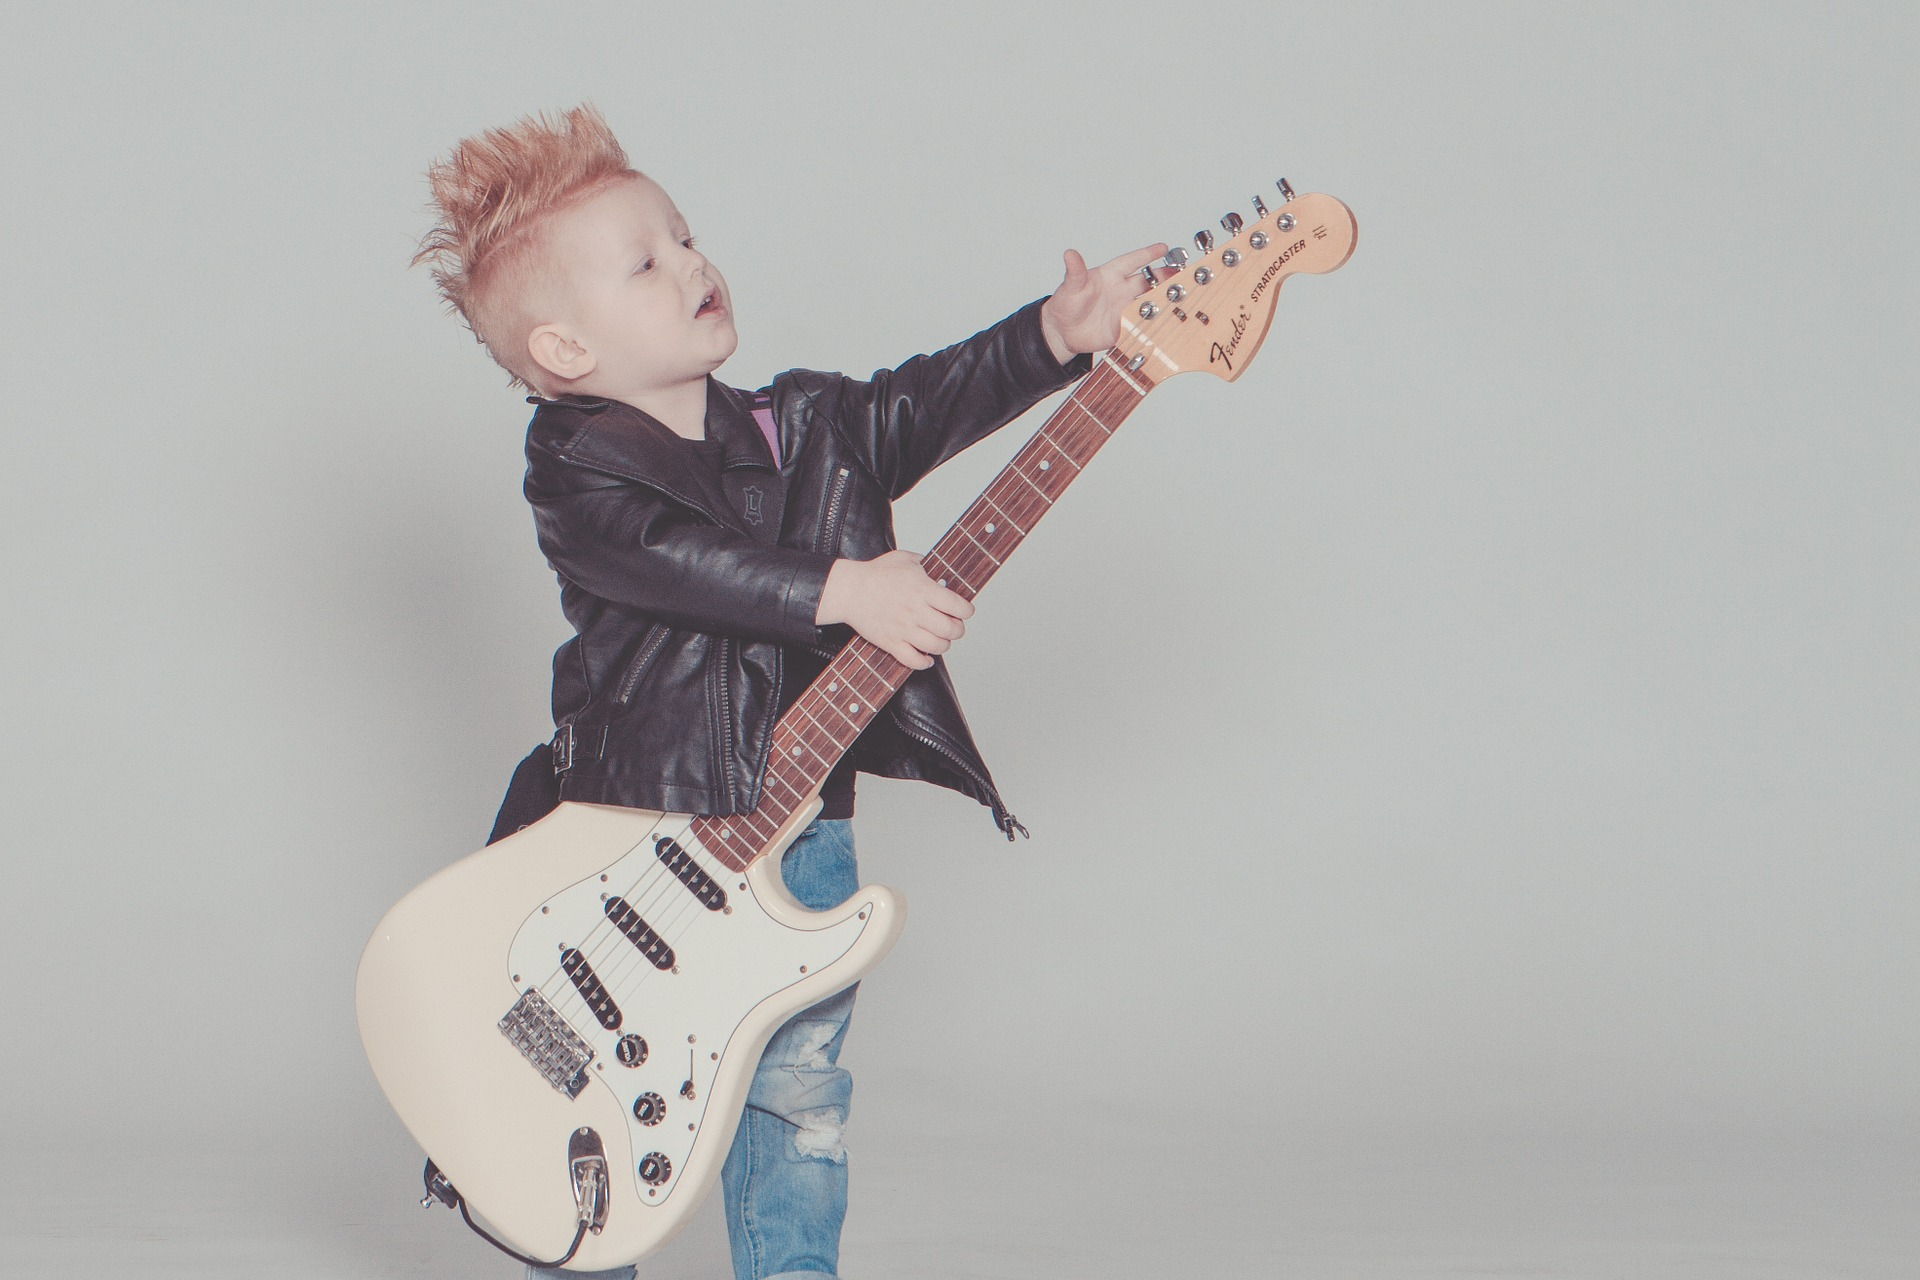 Recommended Electric Guitars for Home Practice (Kid's Edition)